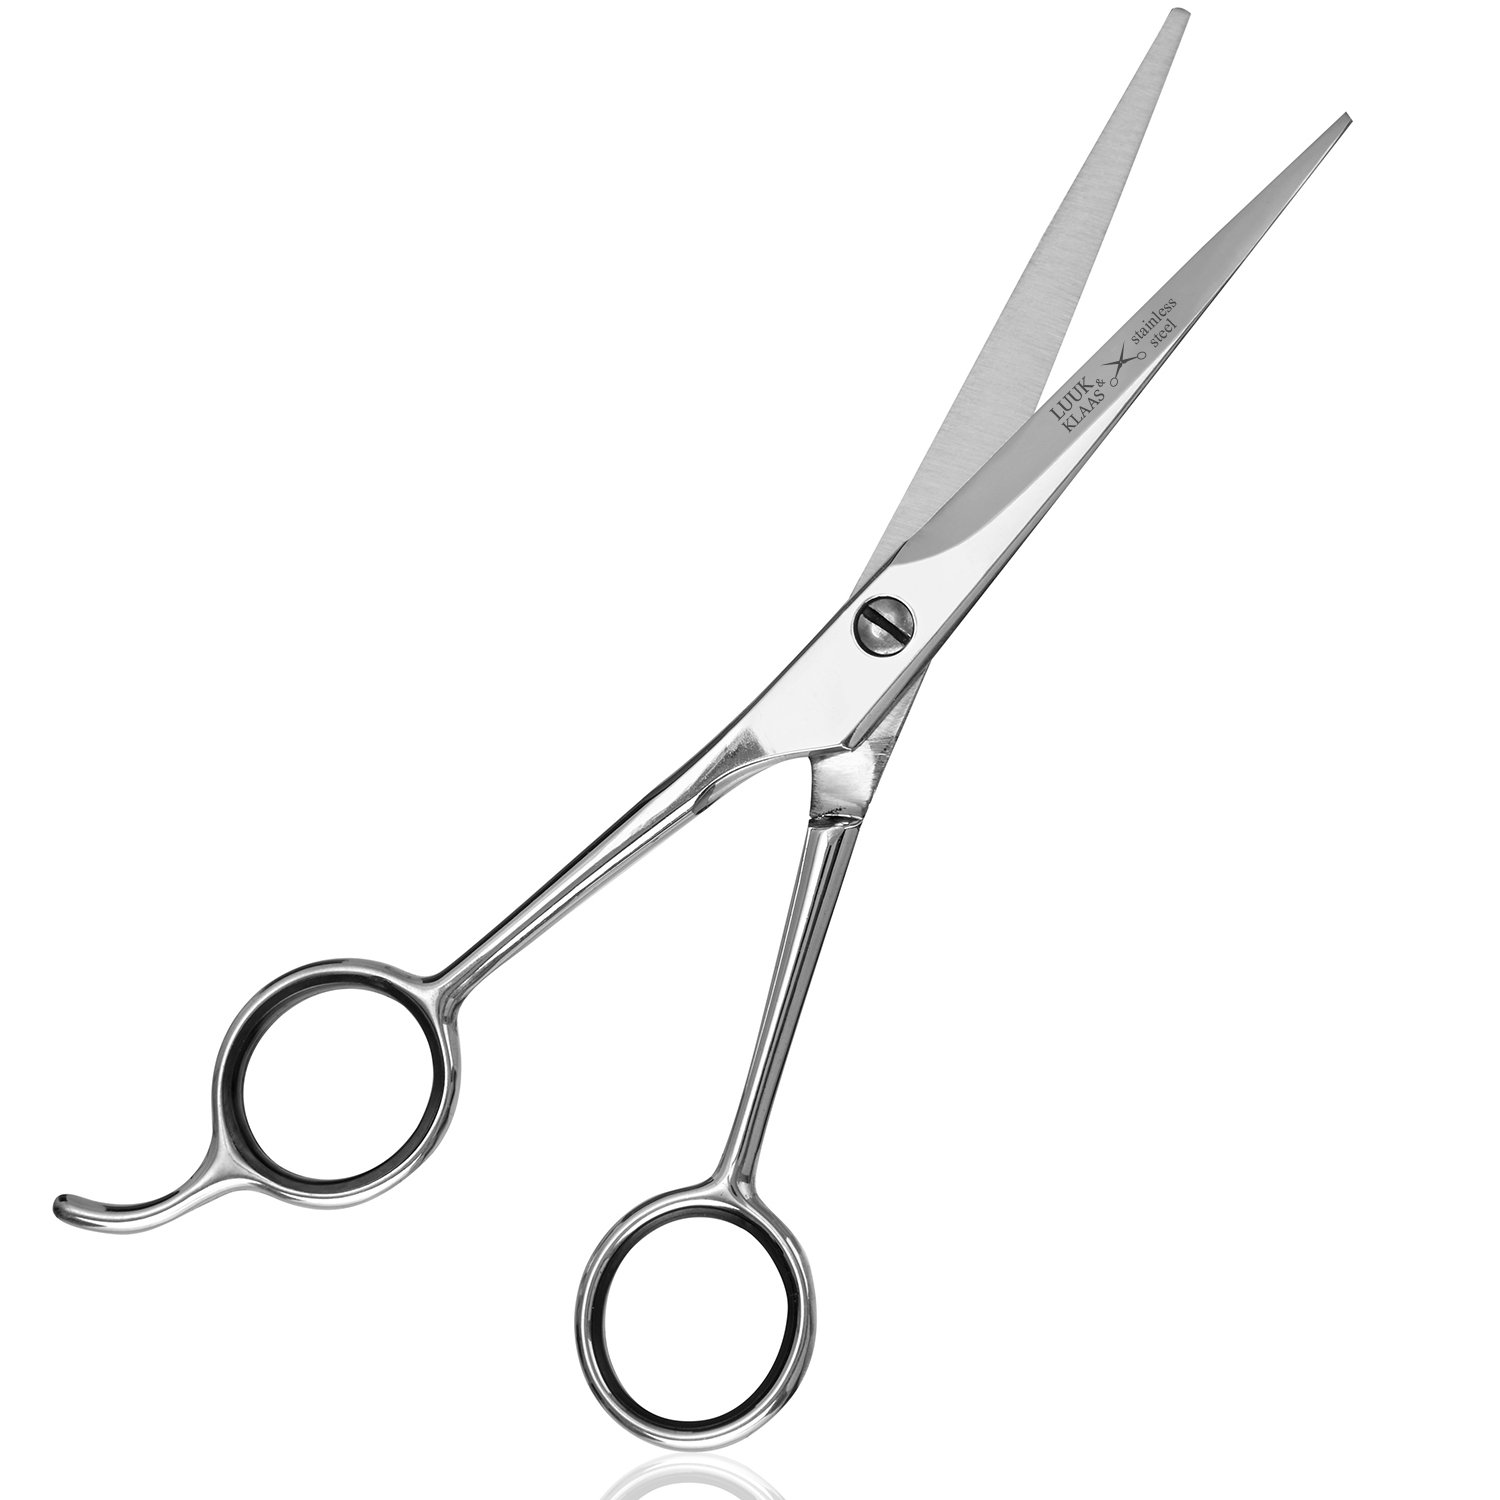 LUUK & KLAAS Professional Hairdresser Scissors made from stainless steel with single-sided micro interlocking – for a precise and sharp cut | 2 year satisfaction guarantee | professional hairdressing scissors, scissors, styling scissors, barber scissor